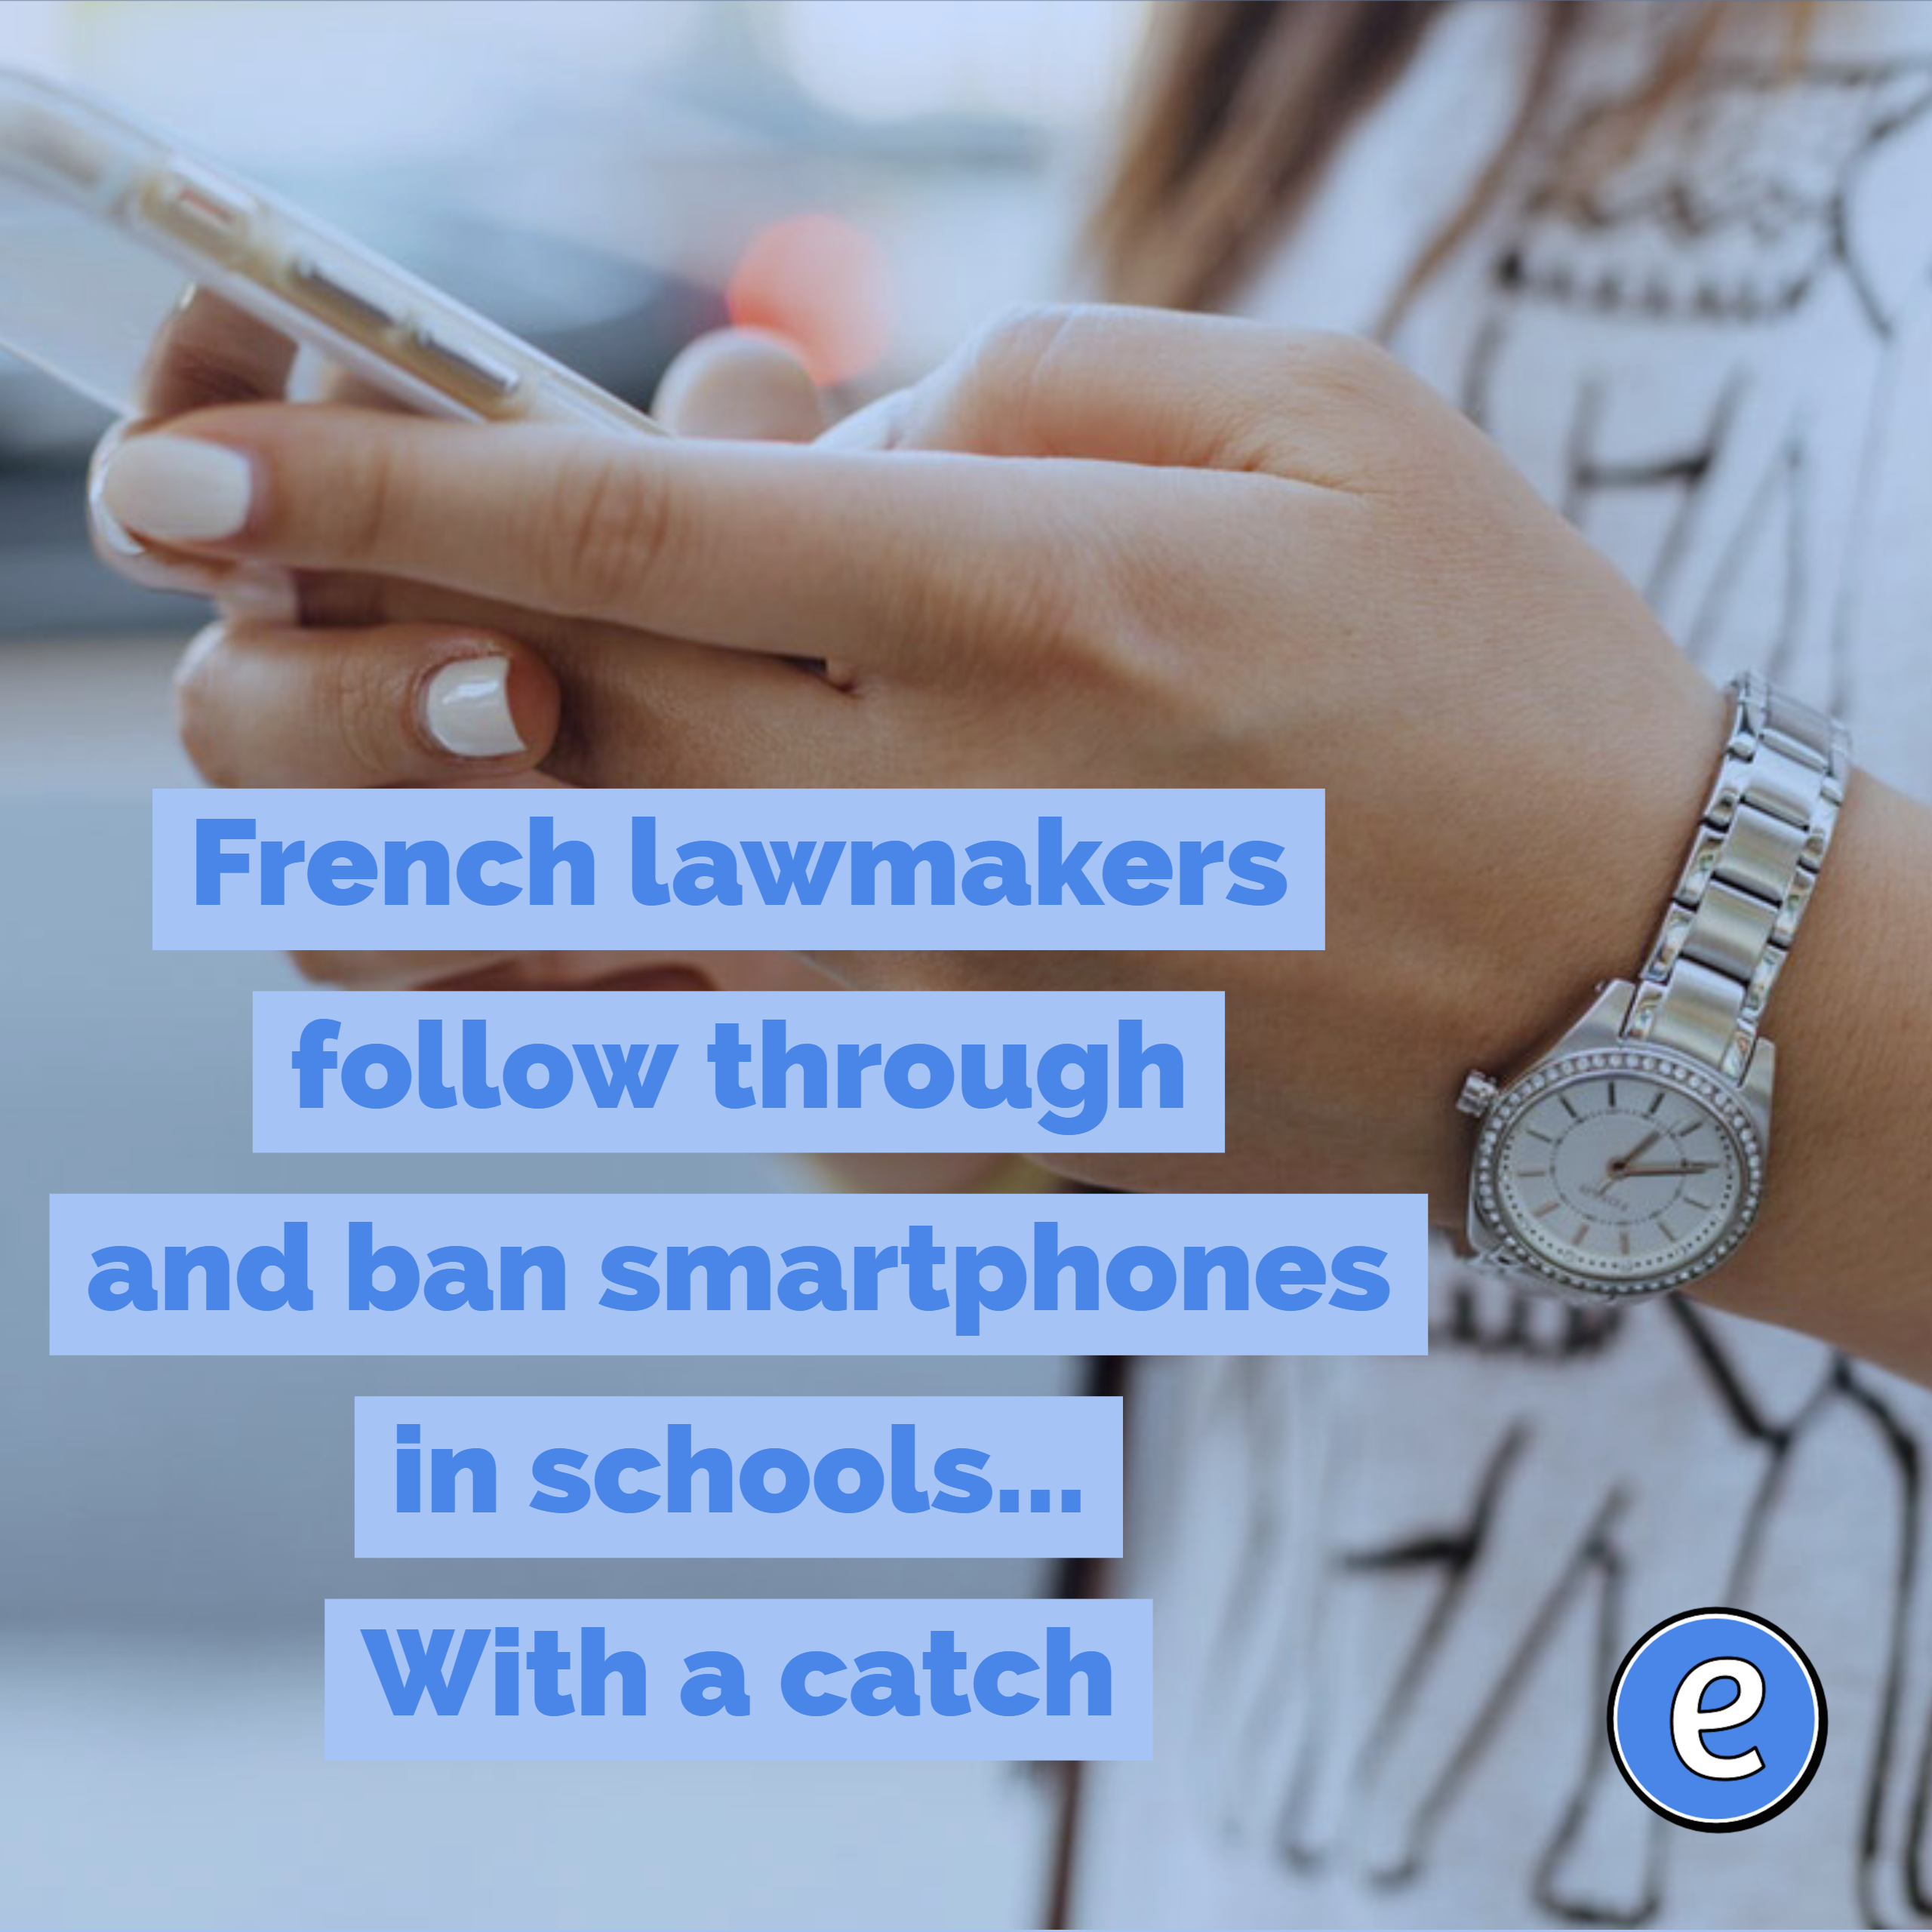 French lawmakers follow through and ban smartphones in schools… With a catch